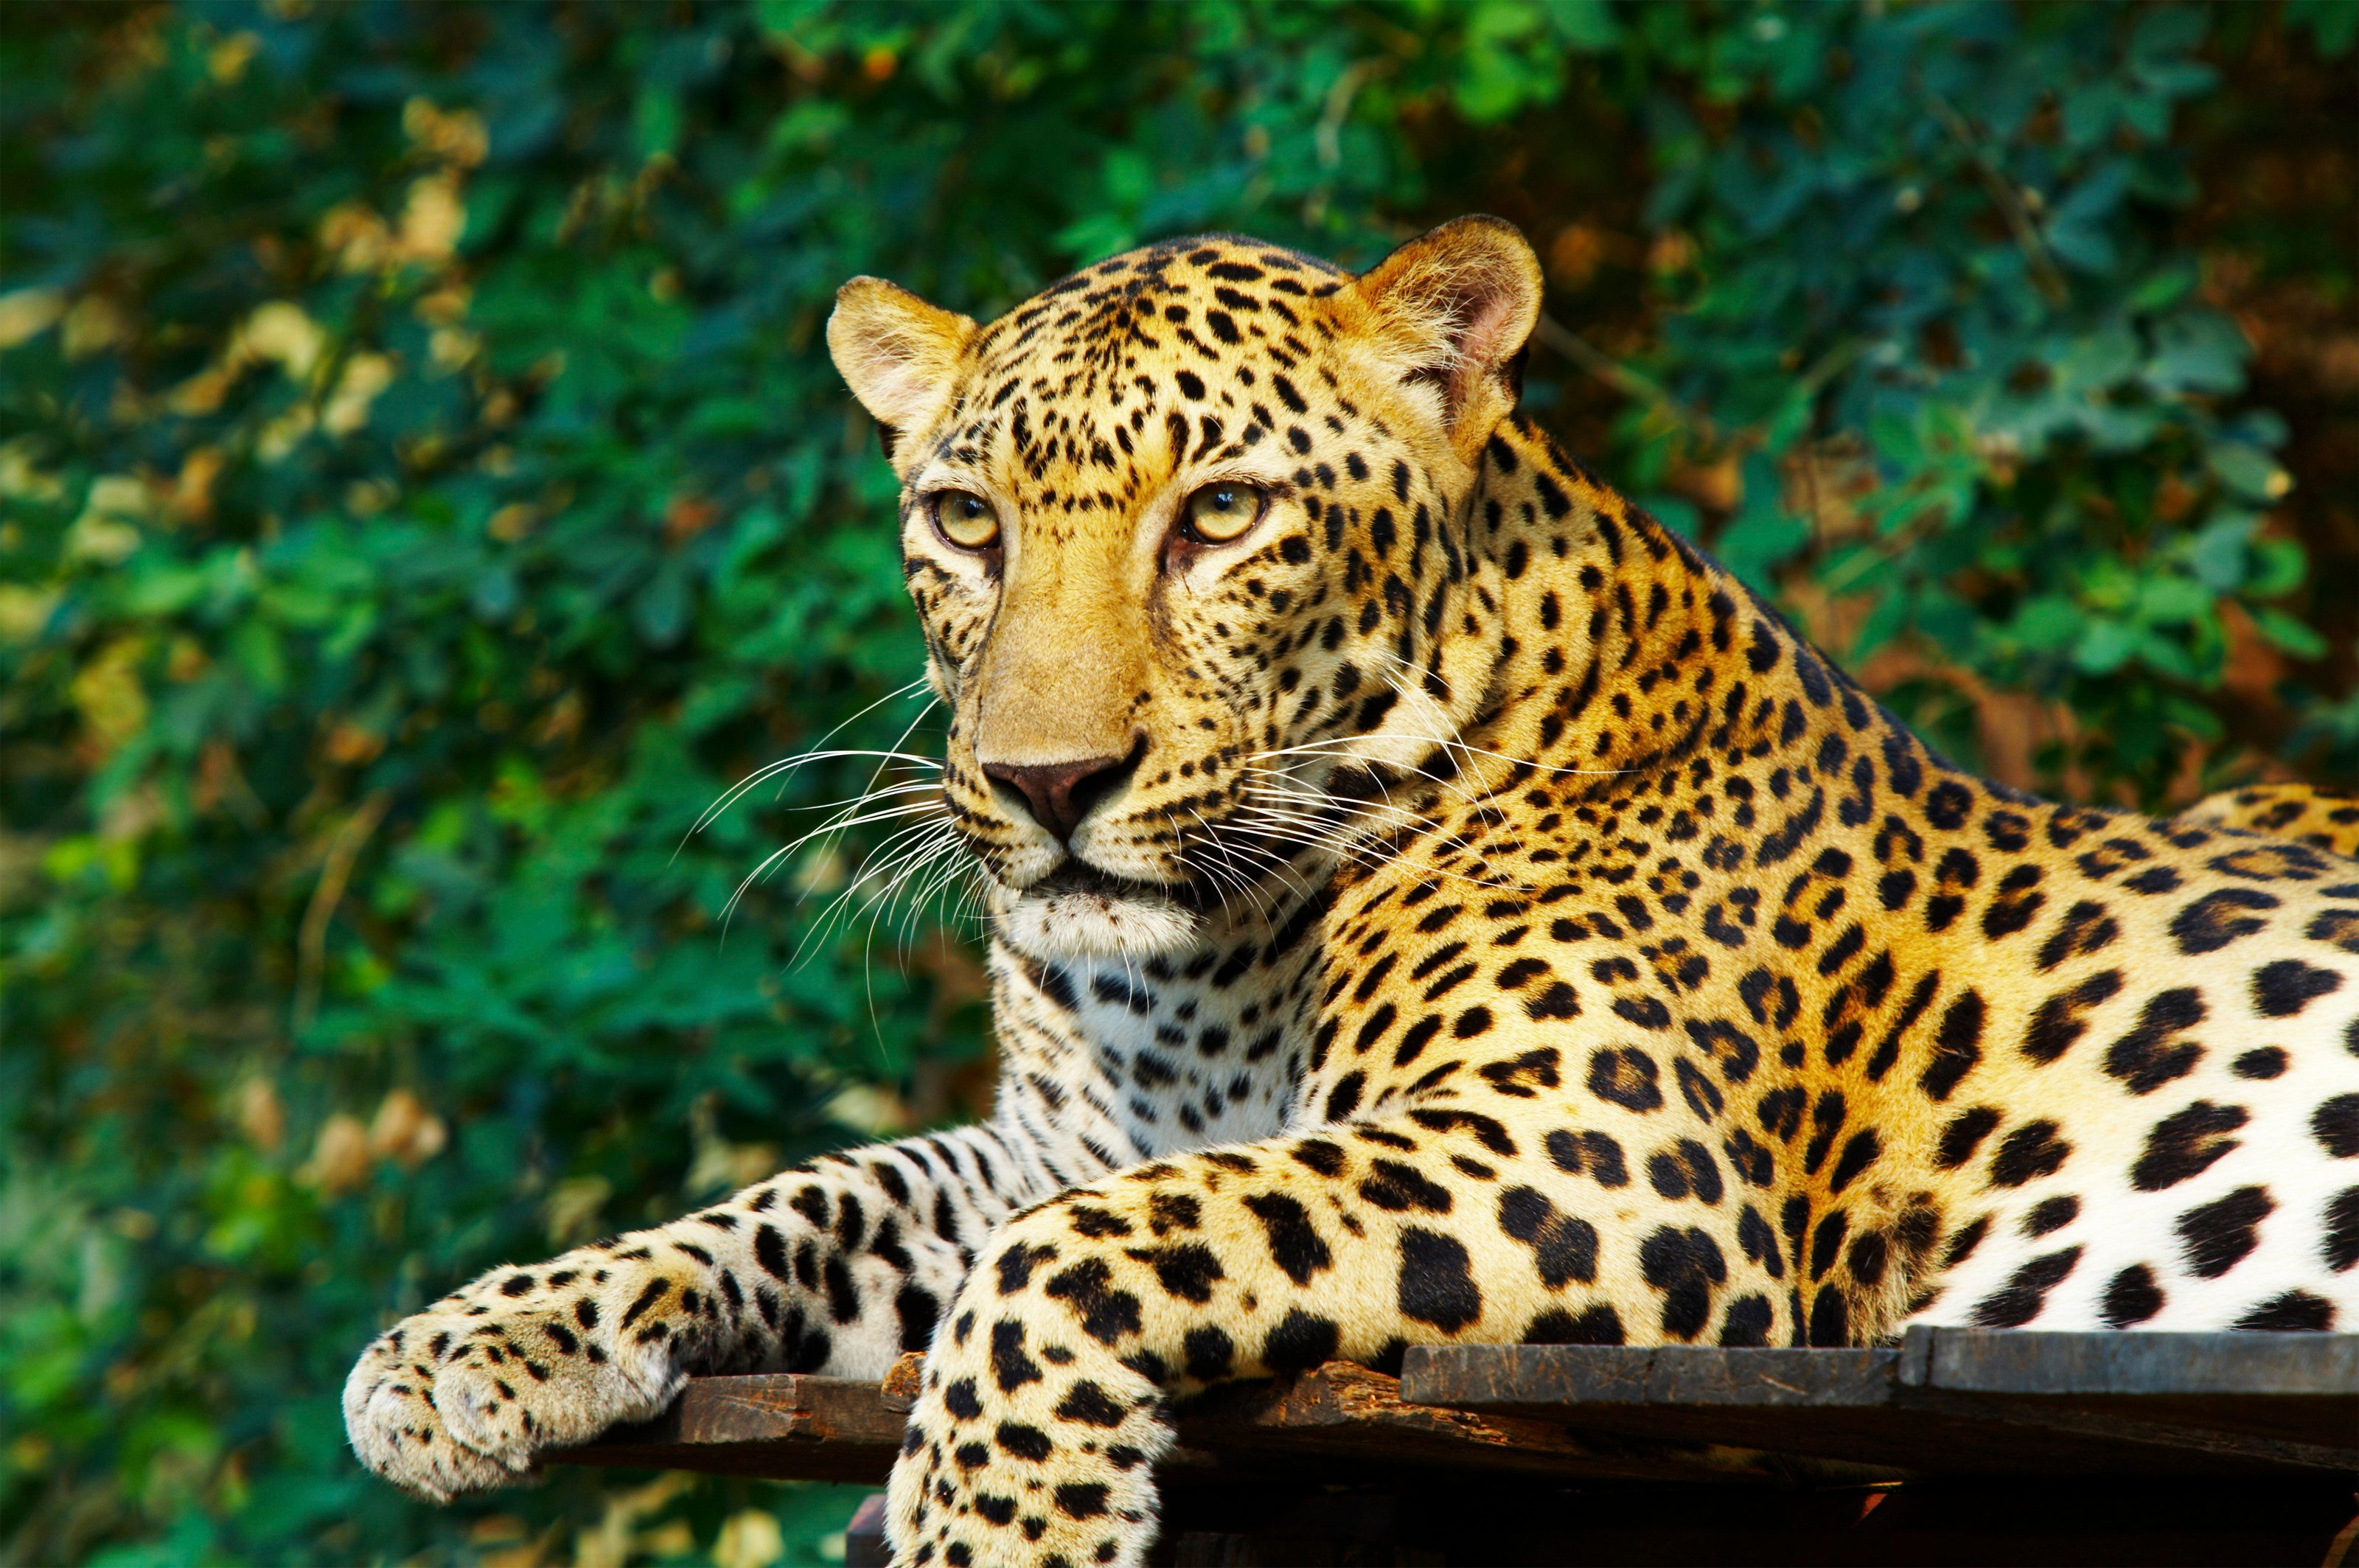 5. The Leopard is the Most Widespread Member of the Cat Family